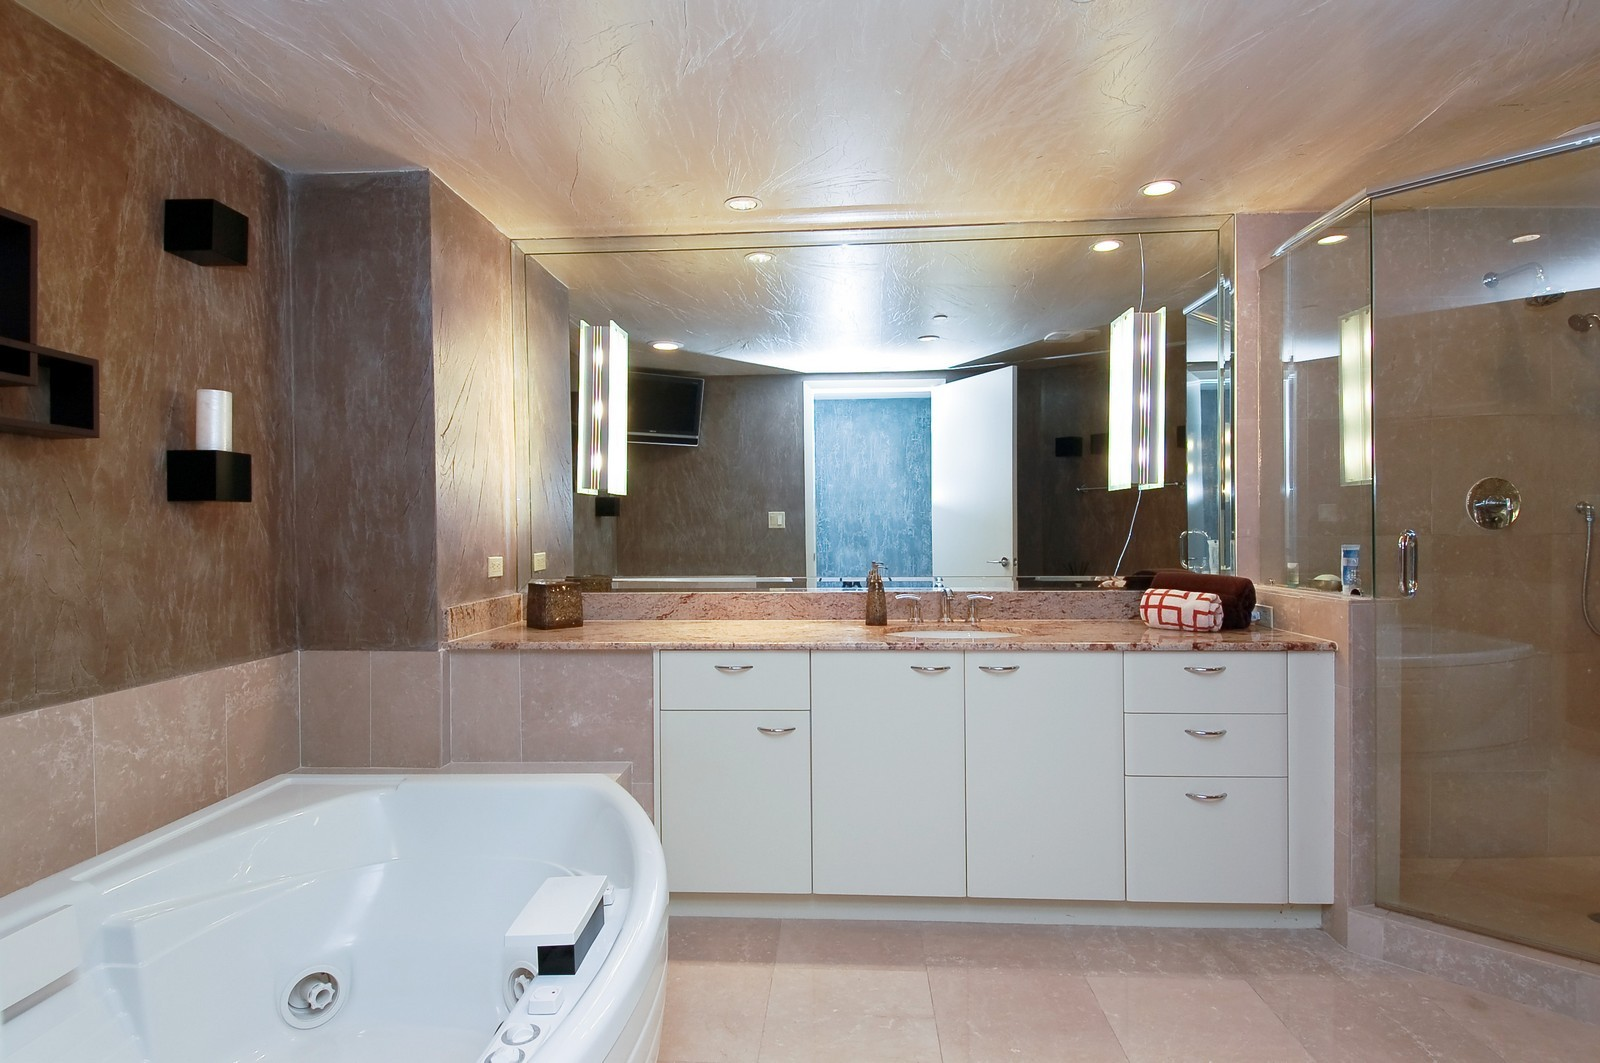 Real Estate Photography - 1600 S Ocean Blvd, Apt 802, Pompano Beach, FL, 33062 - Master Bathroom